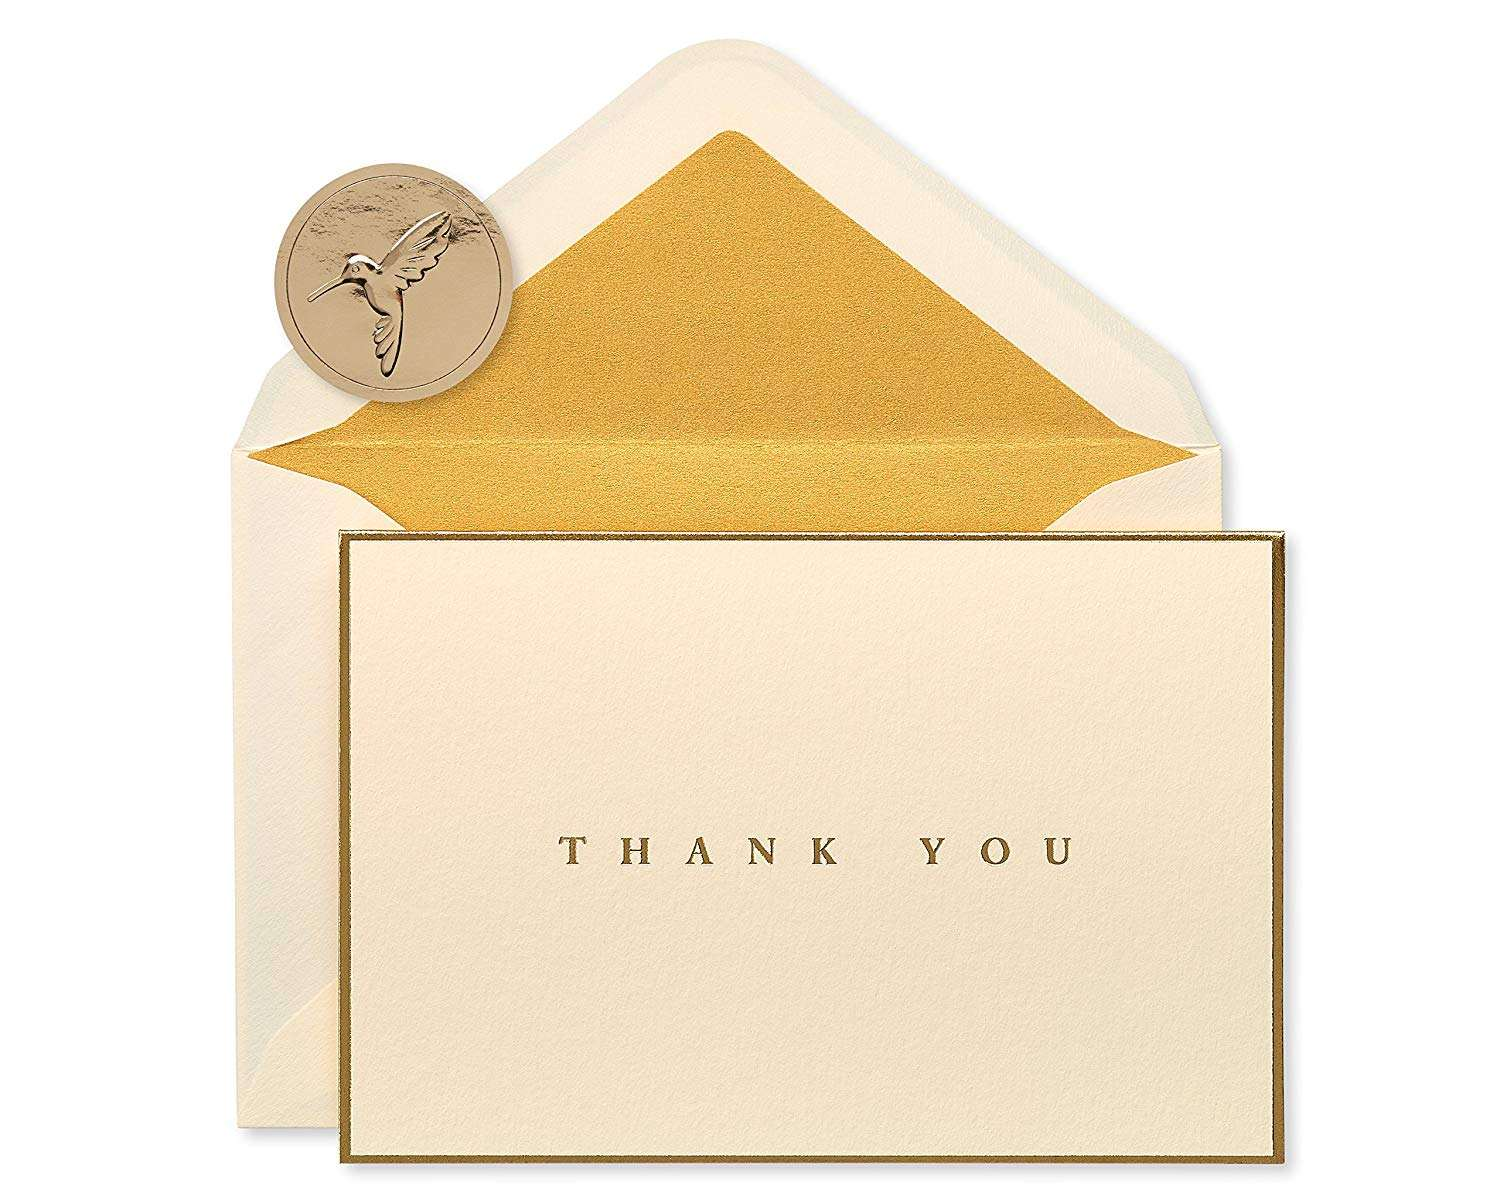 Custom Personalised Pack Gold Foil Greeting Business Thank You Card with Envelopes and Logo, Thank You for Shopping Card